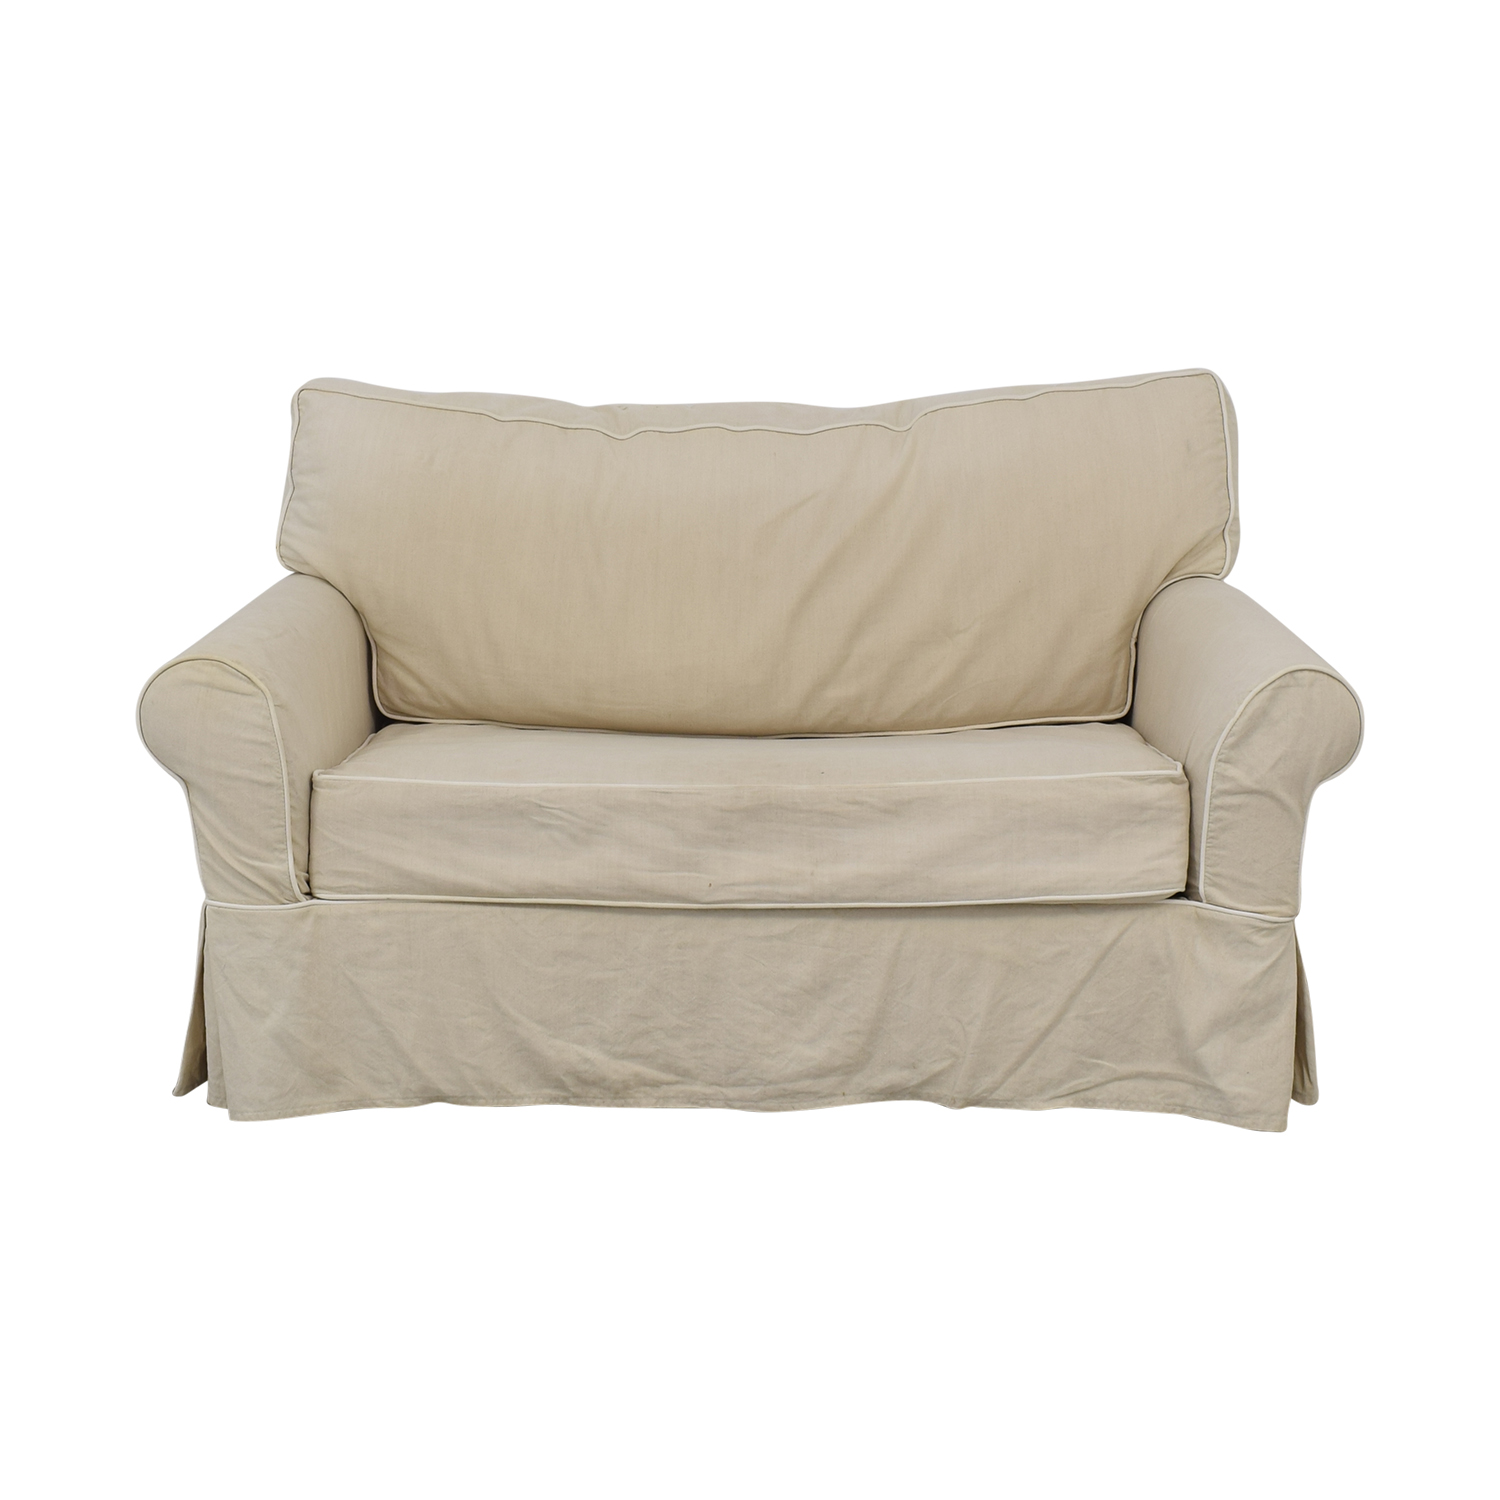 Crate & Barrel Crate & Barrel Rolled Arm Loveseat Twin Sleeper discount